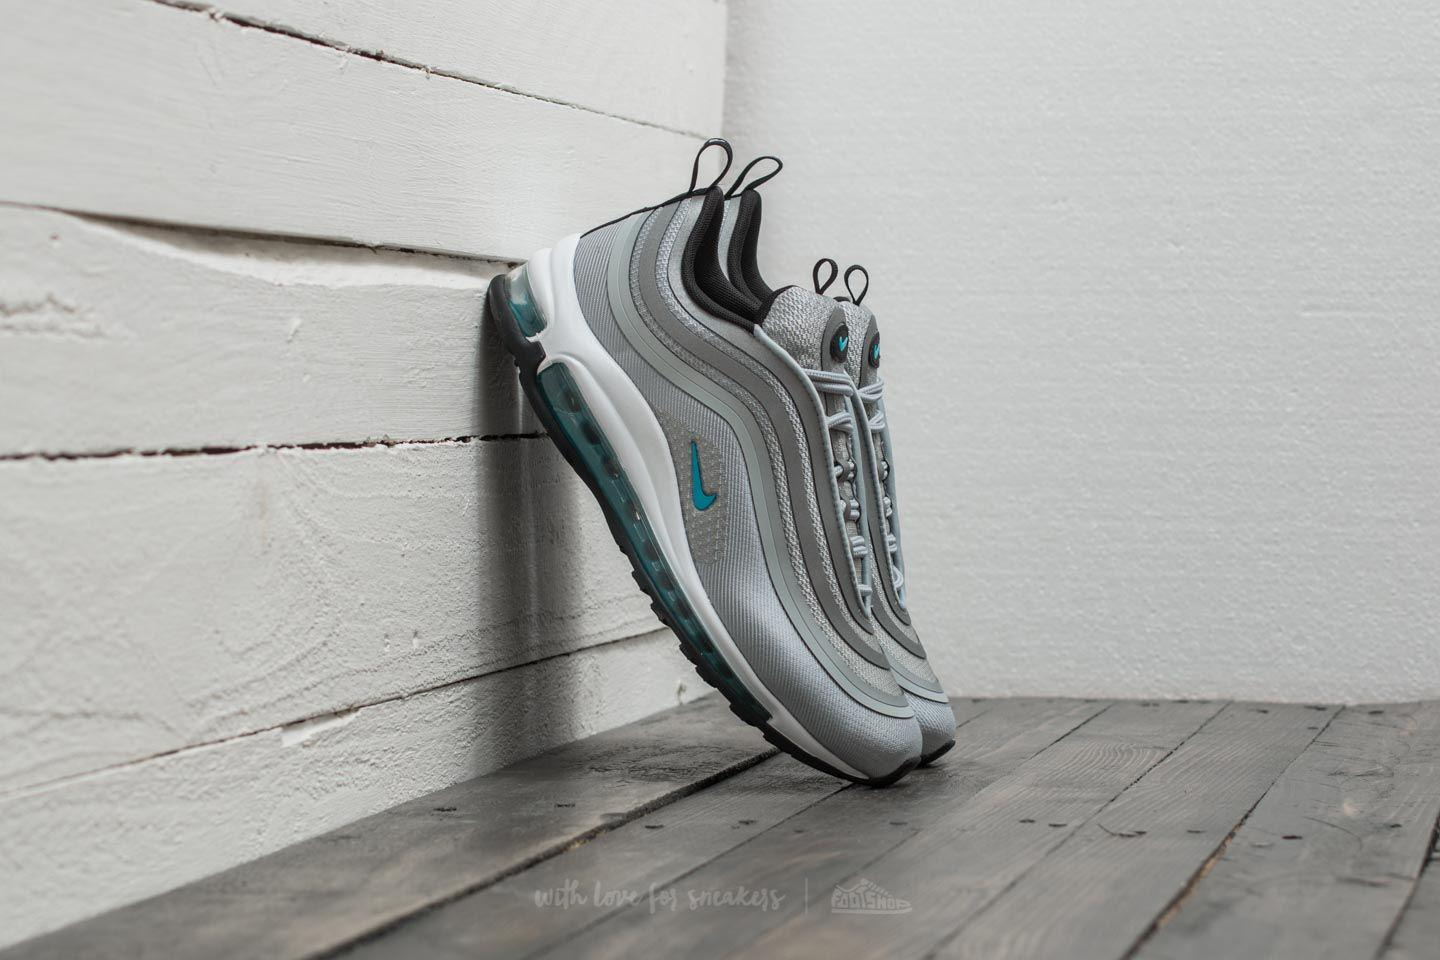 Nike Air Max 97 Ultra '17 Lux Trainers in Gray Lyst